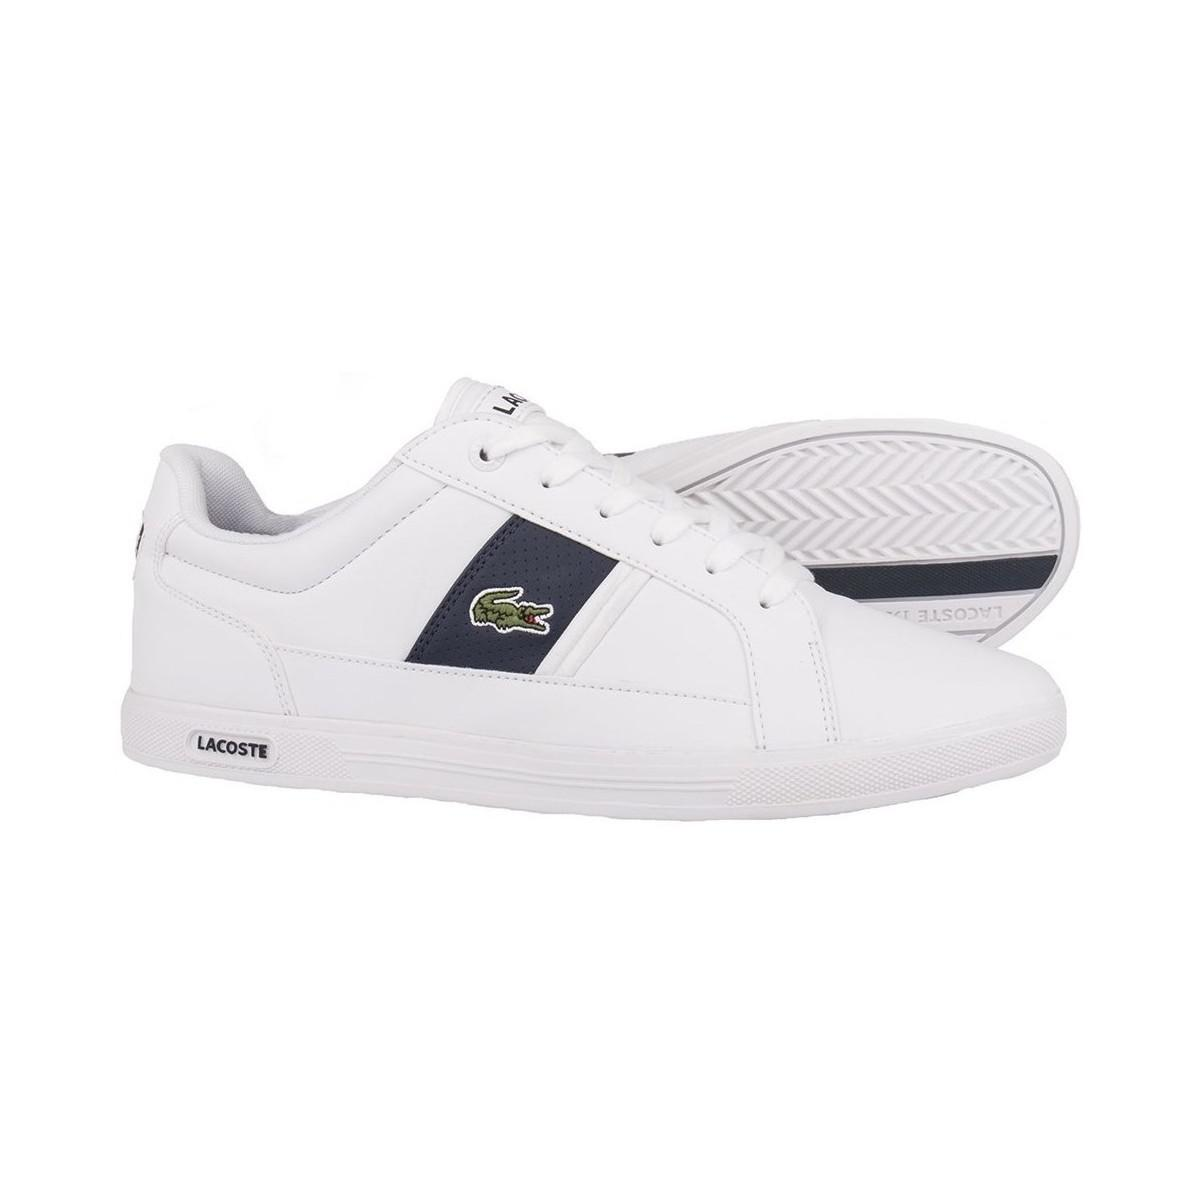 a1a5398d3667 Lacoste Europa Lcr3 Wht Men s Shoes (trainers) In White in White for ...